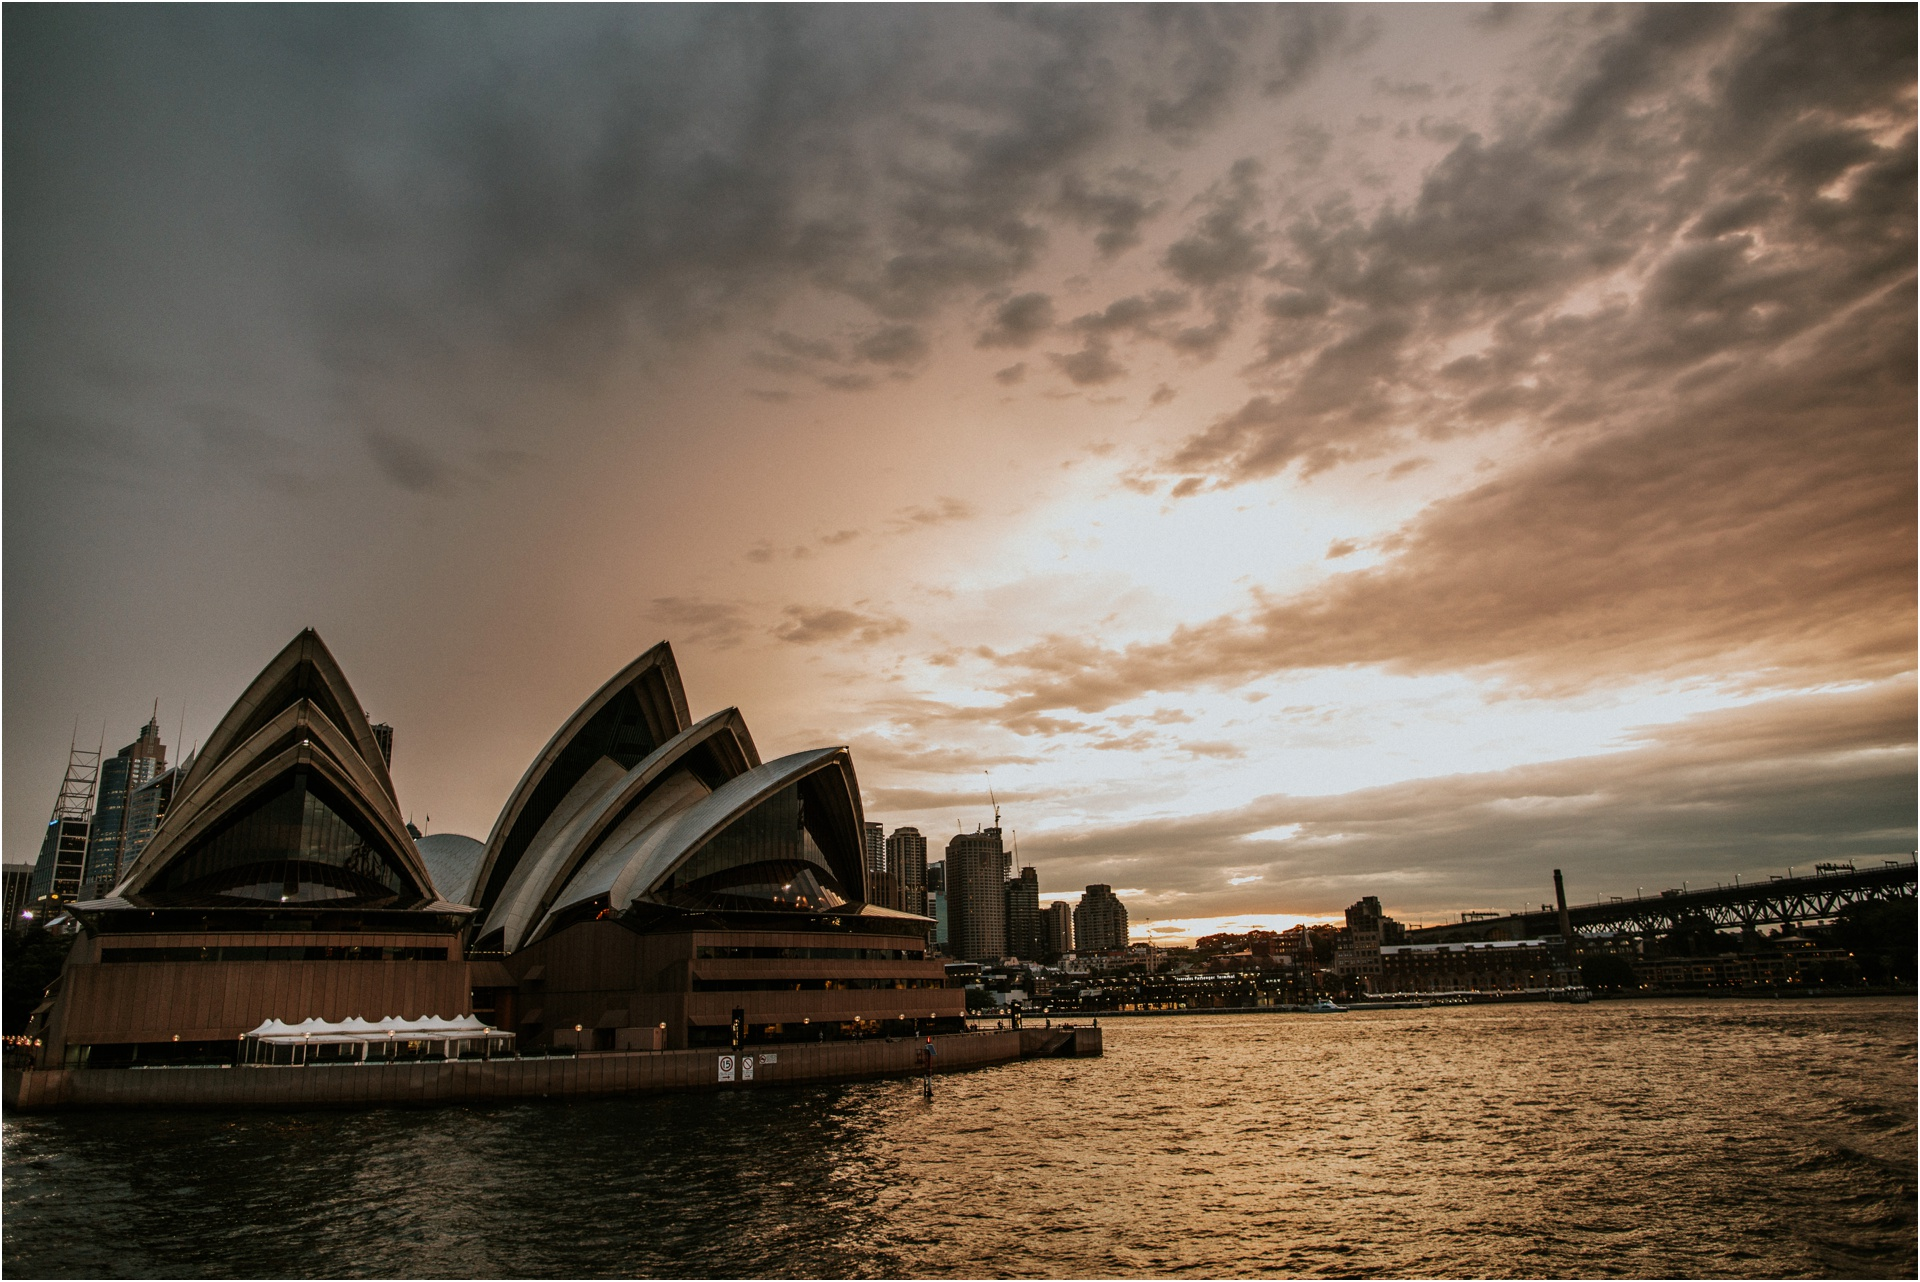 Travel photography, destination wedding photographer, sydney opera house, sydney, australia, ayesha rahman photography, sydney harbour bridge